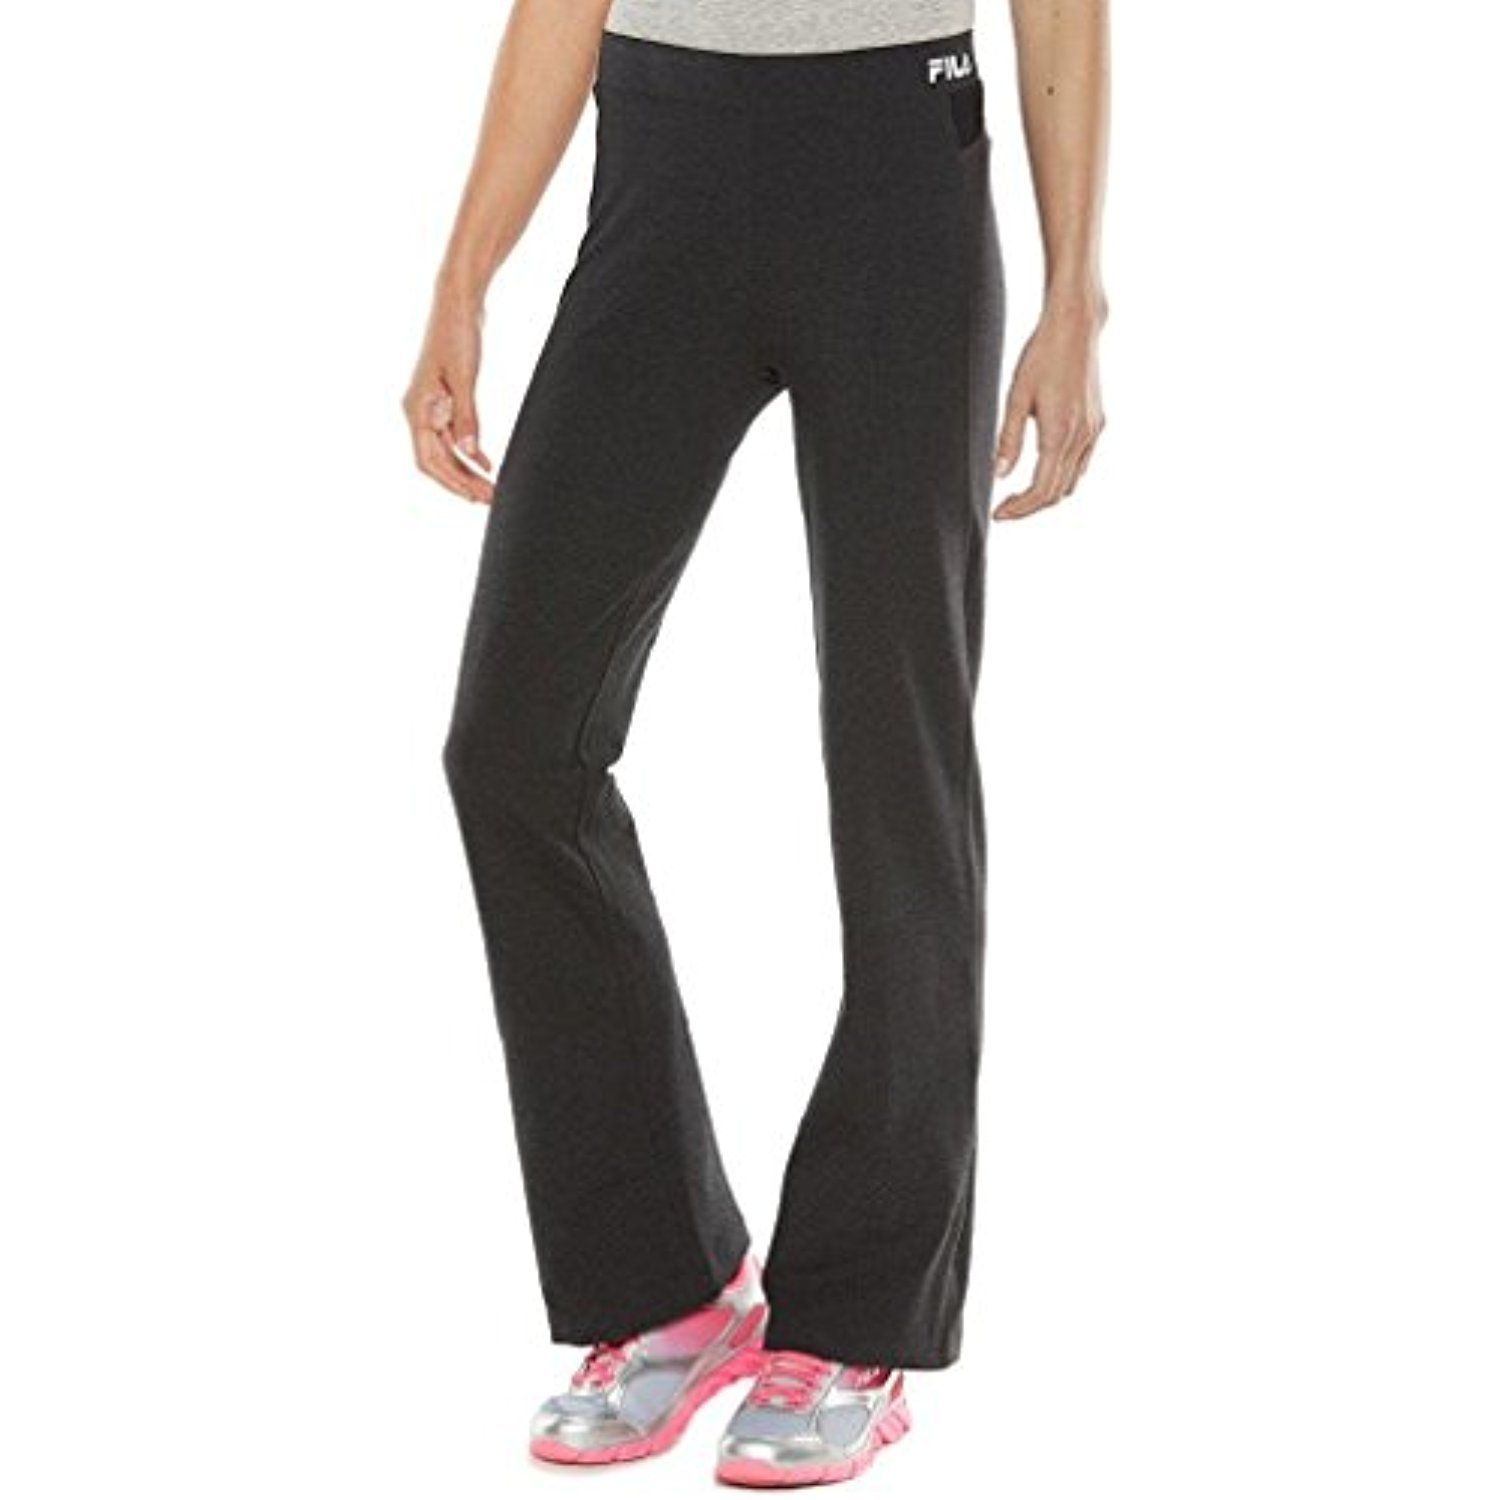 0d59e53547674 FILA SPORT Women's Core Essentials Focus Fitness Yoga Pants Bootcut -- Read  more at the image link. (This is an affiliate link and I receive a  commission ...